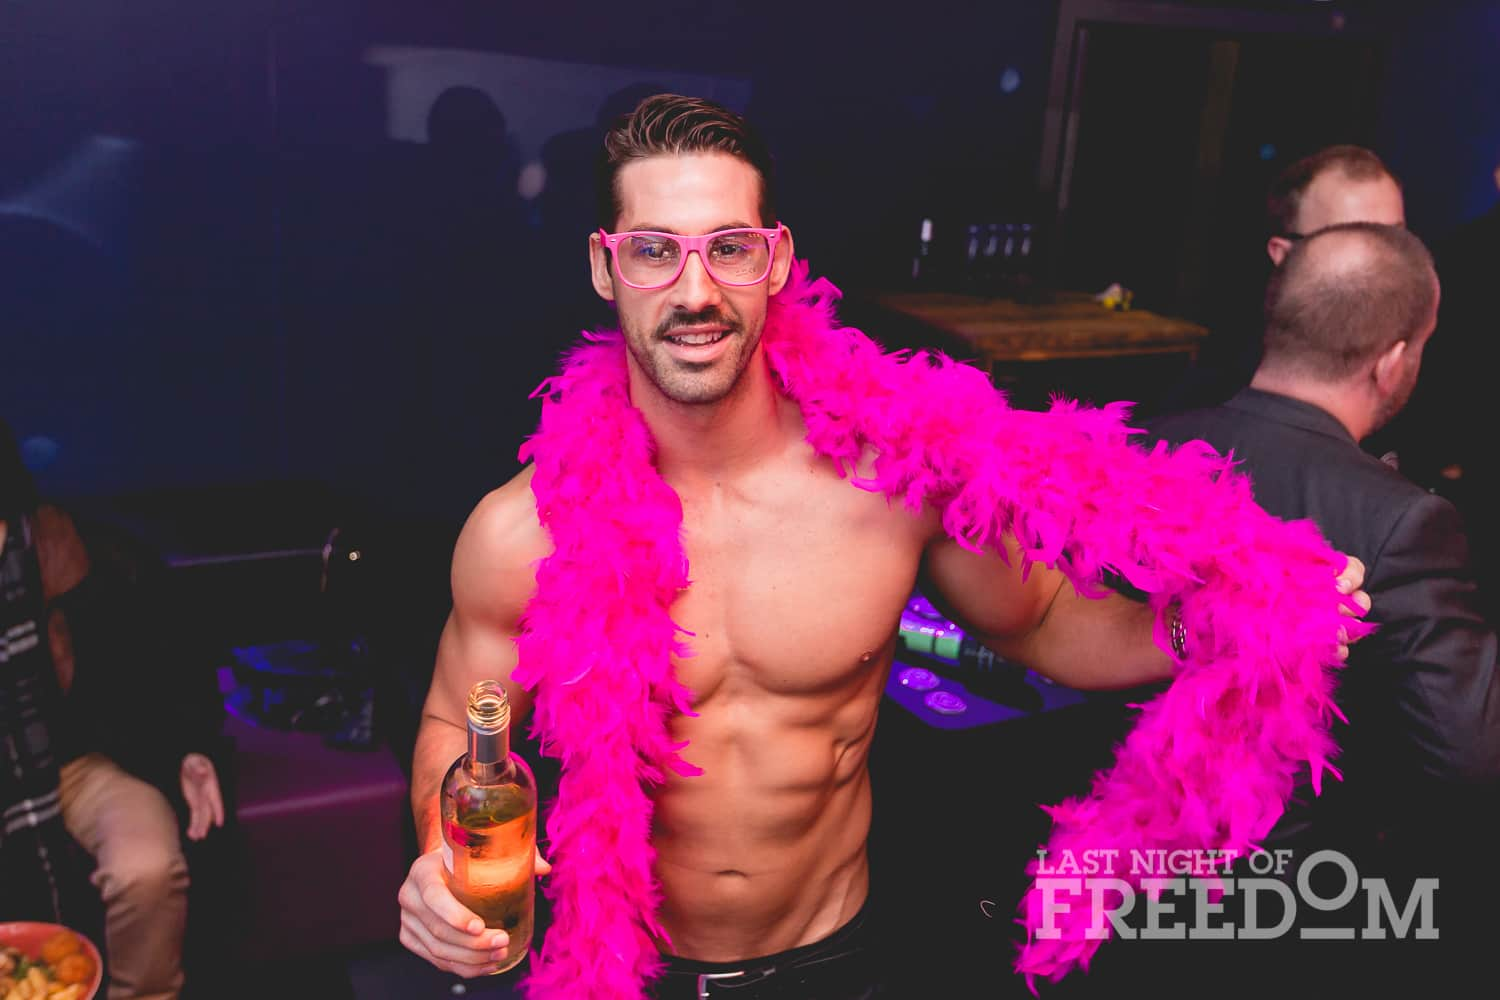 A semi-naked man posing with a pink boa around his neck